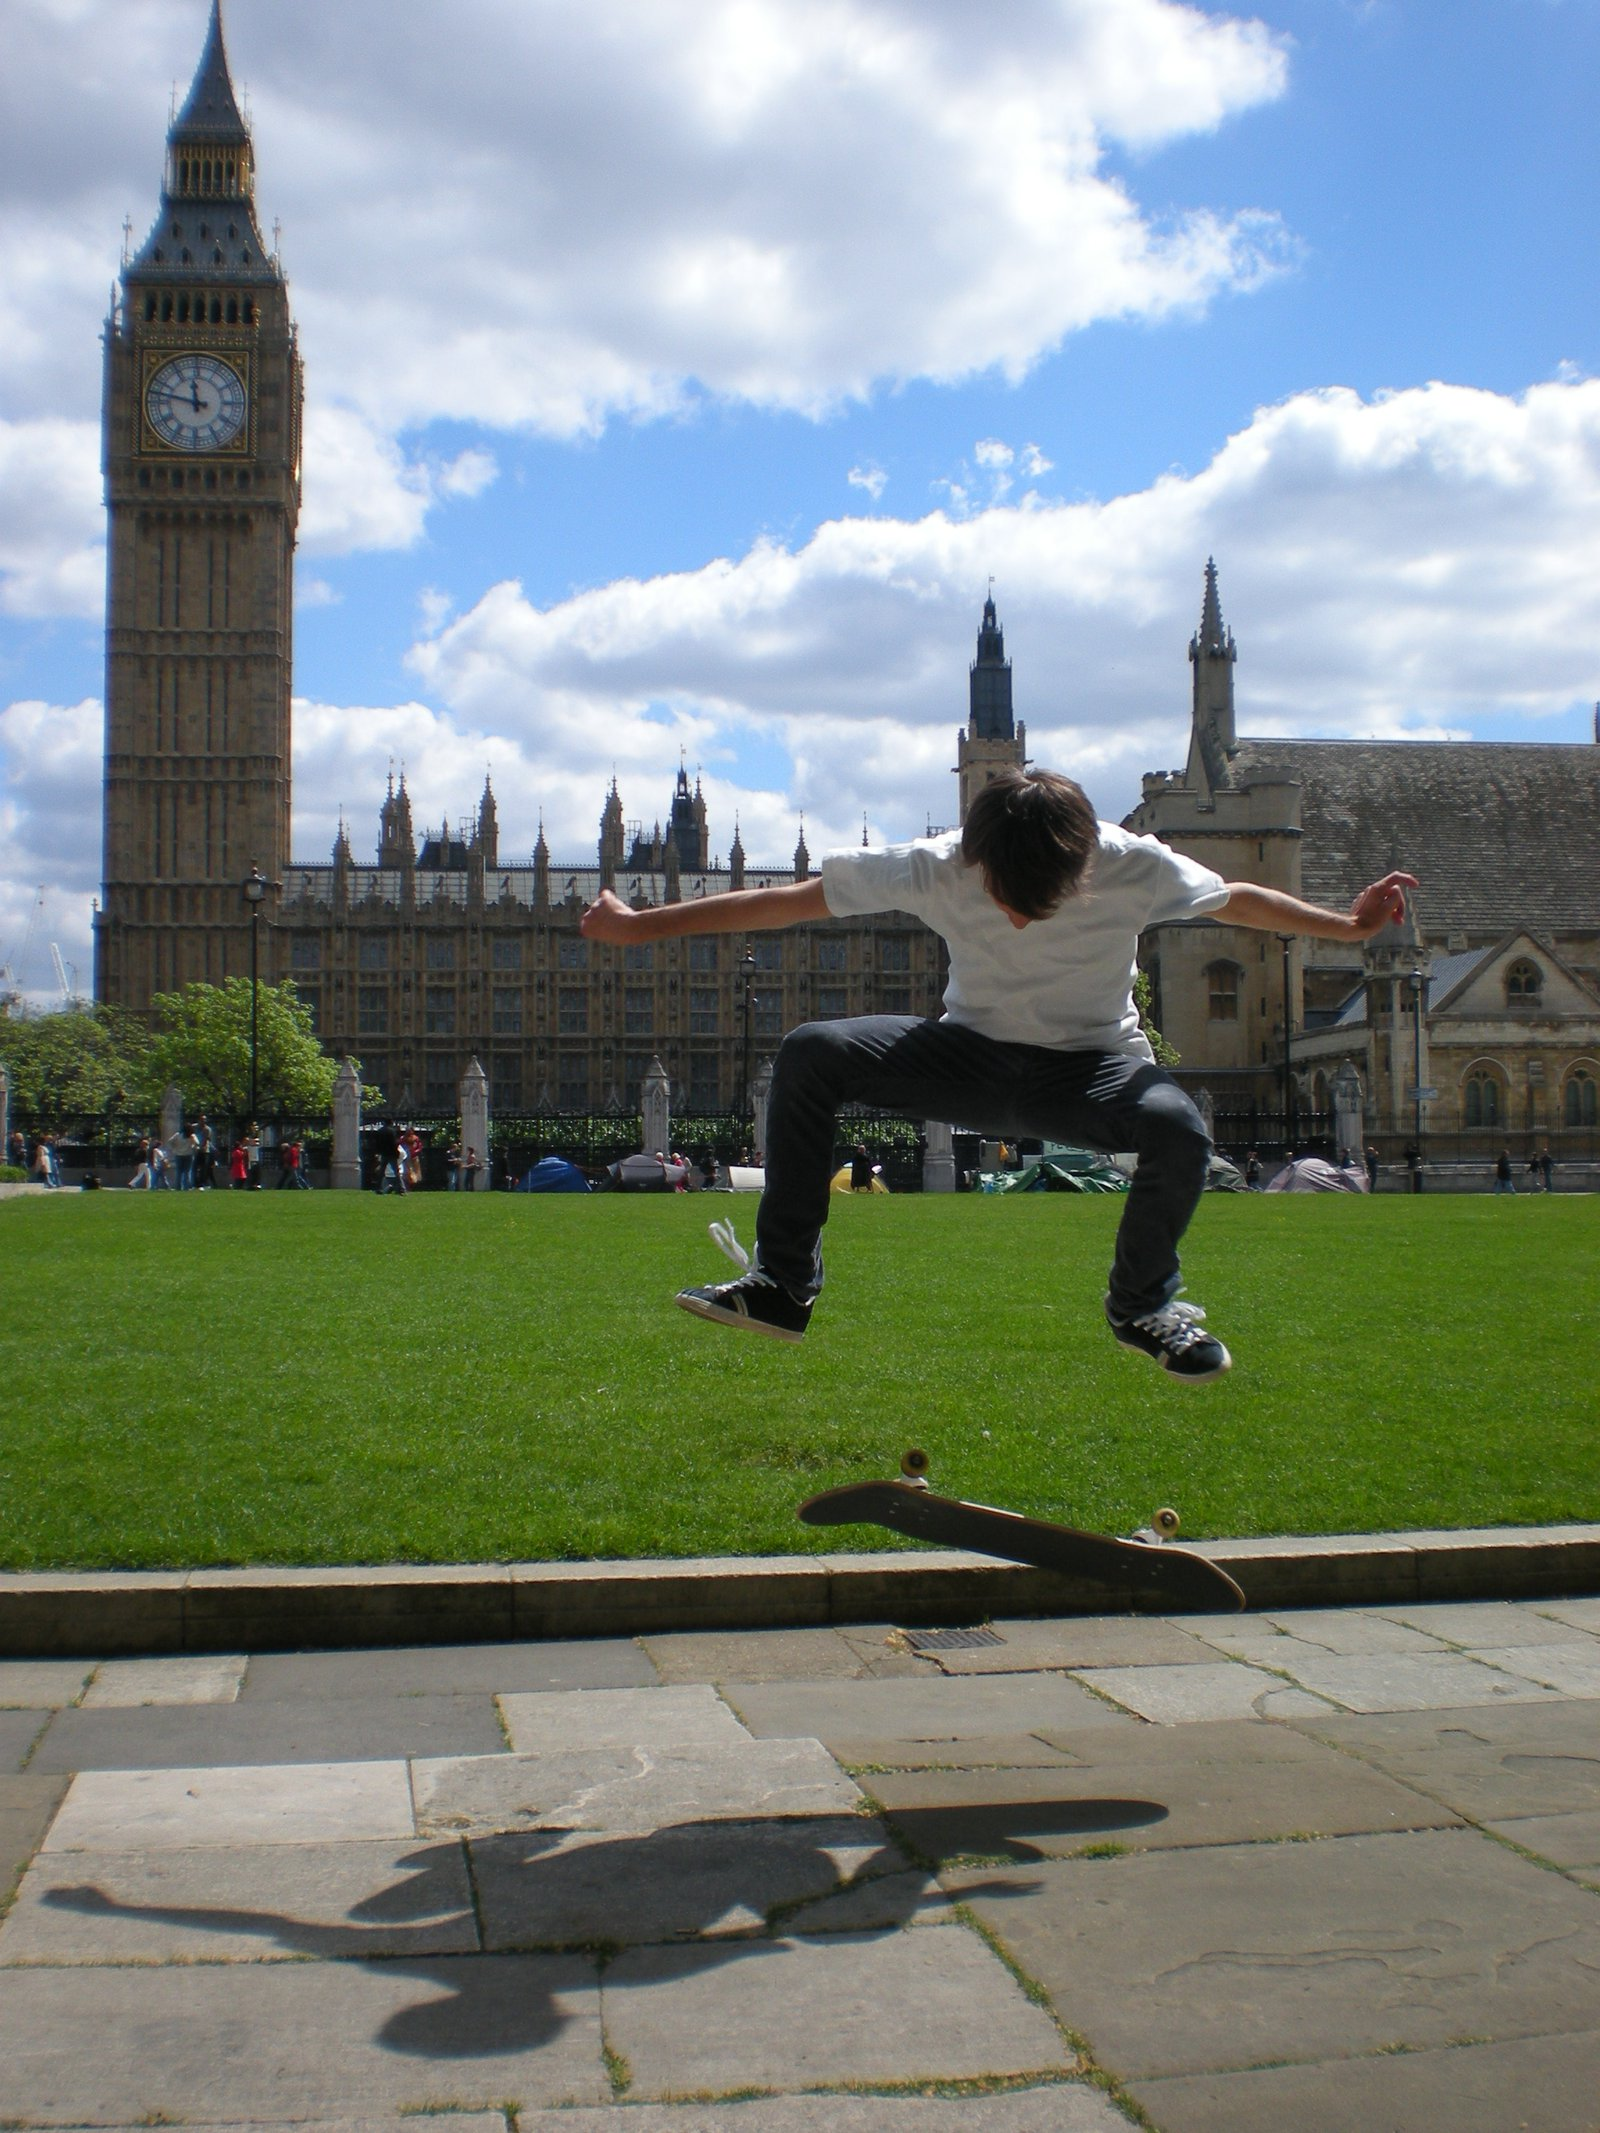 Kickflip in london!